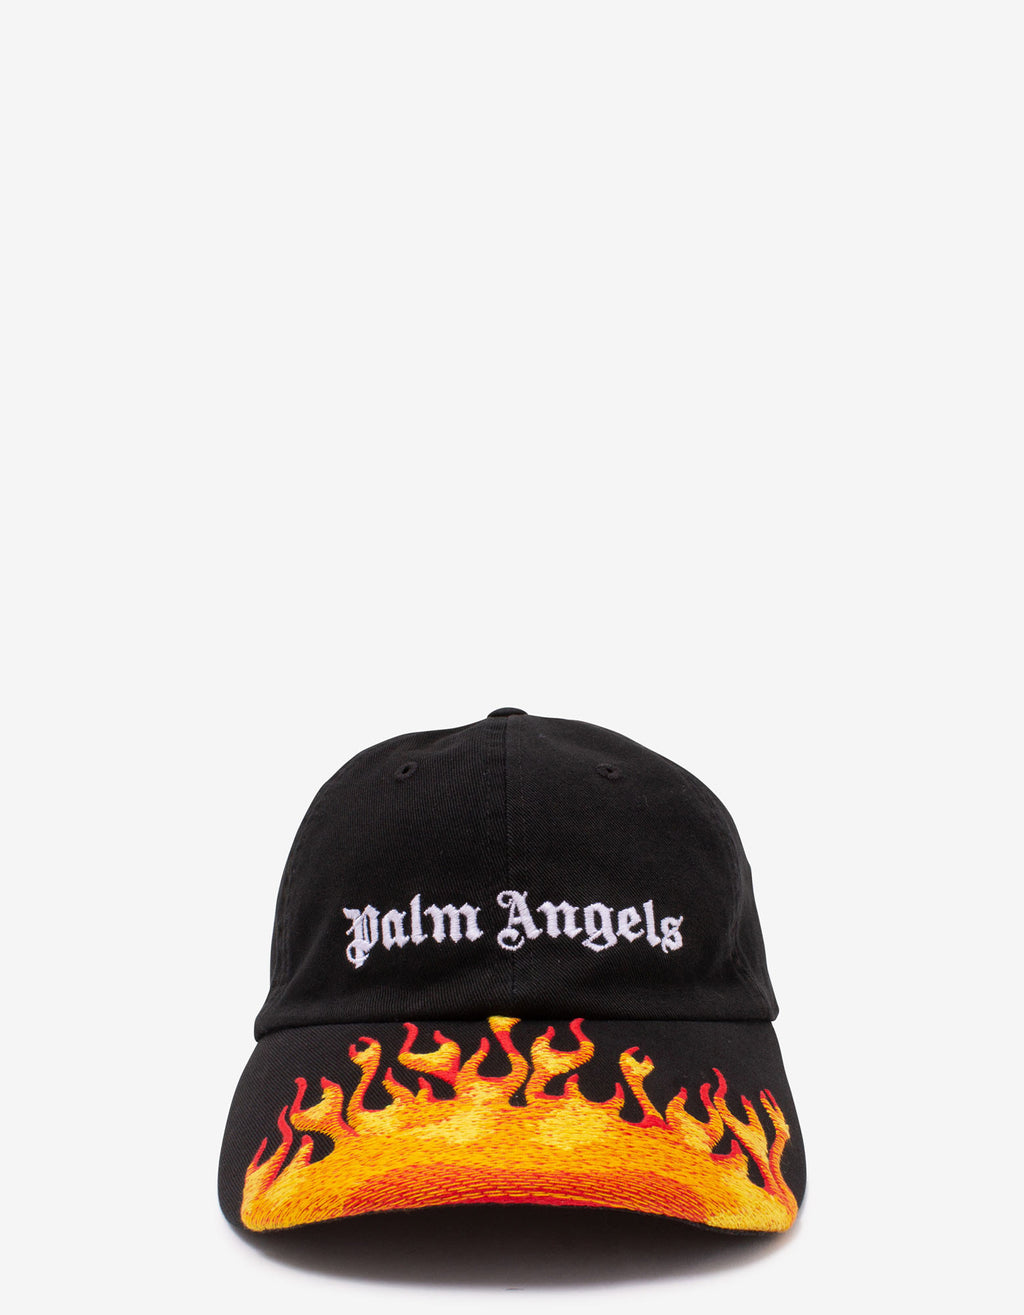 Black Flames Baseball Cap